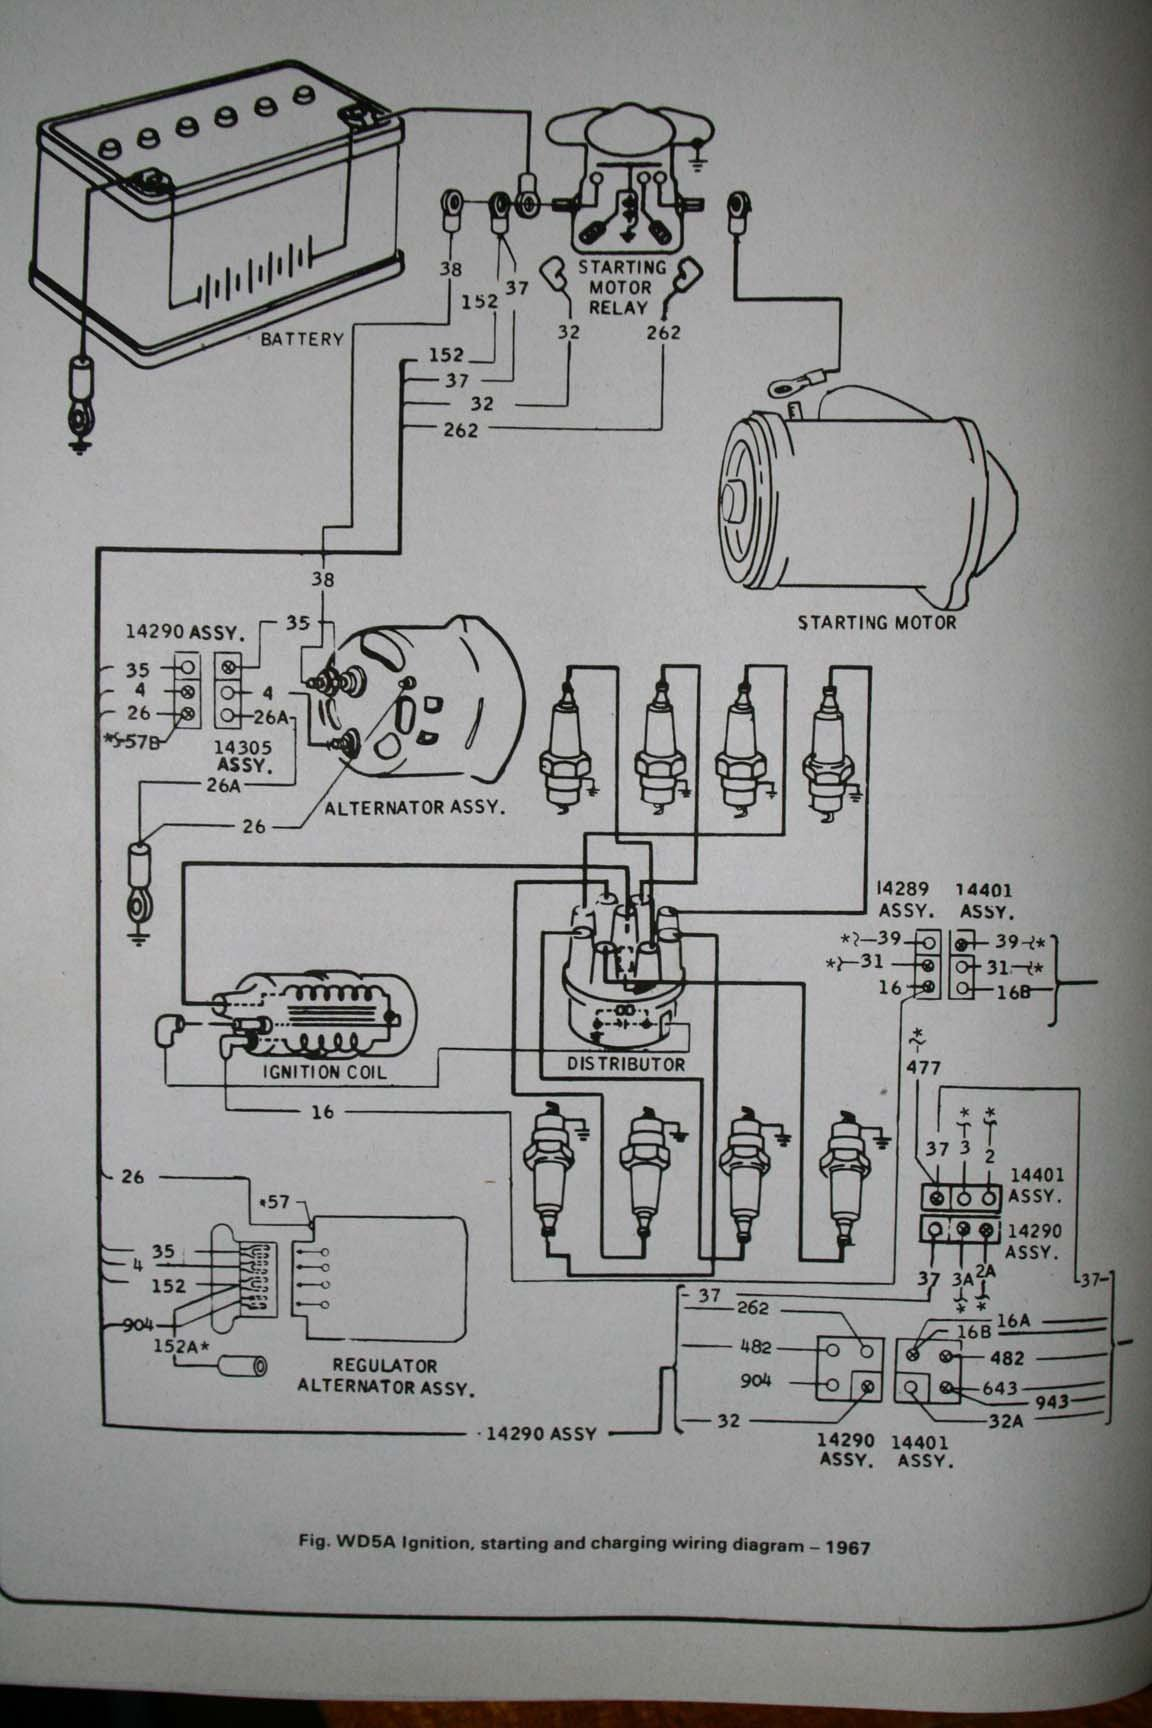 1995 Ford Mustang Voltage Regulator Wiring Diagram Library 1984 Bronco